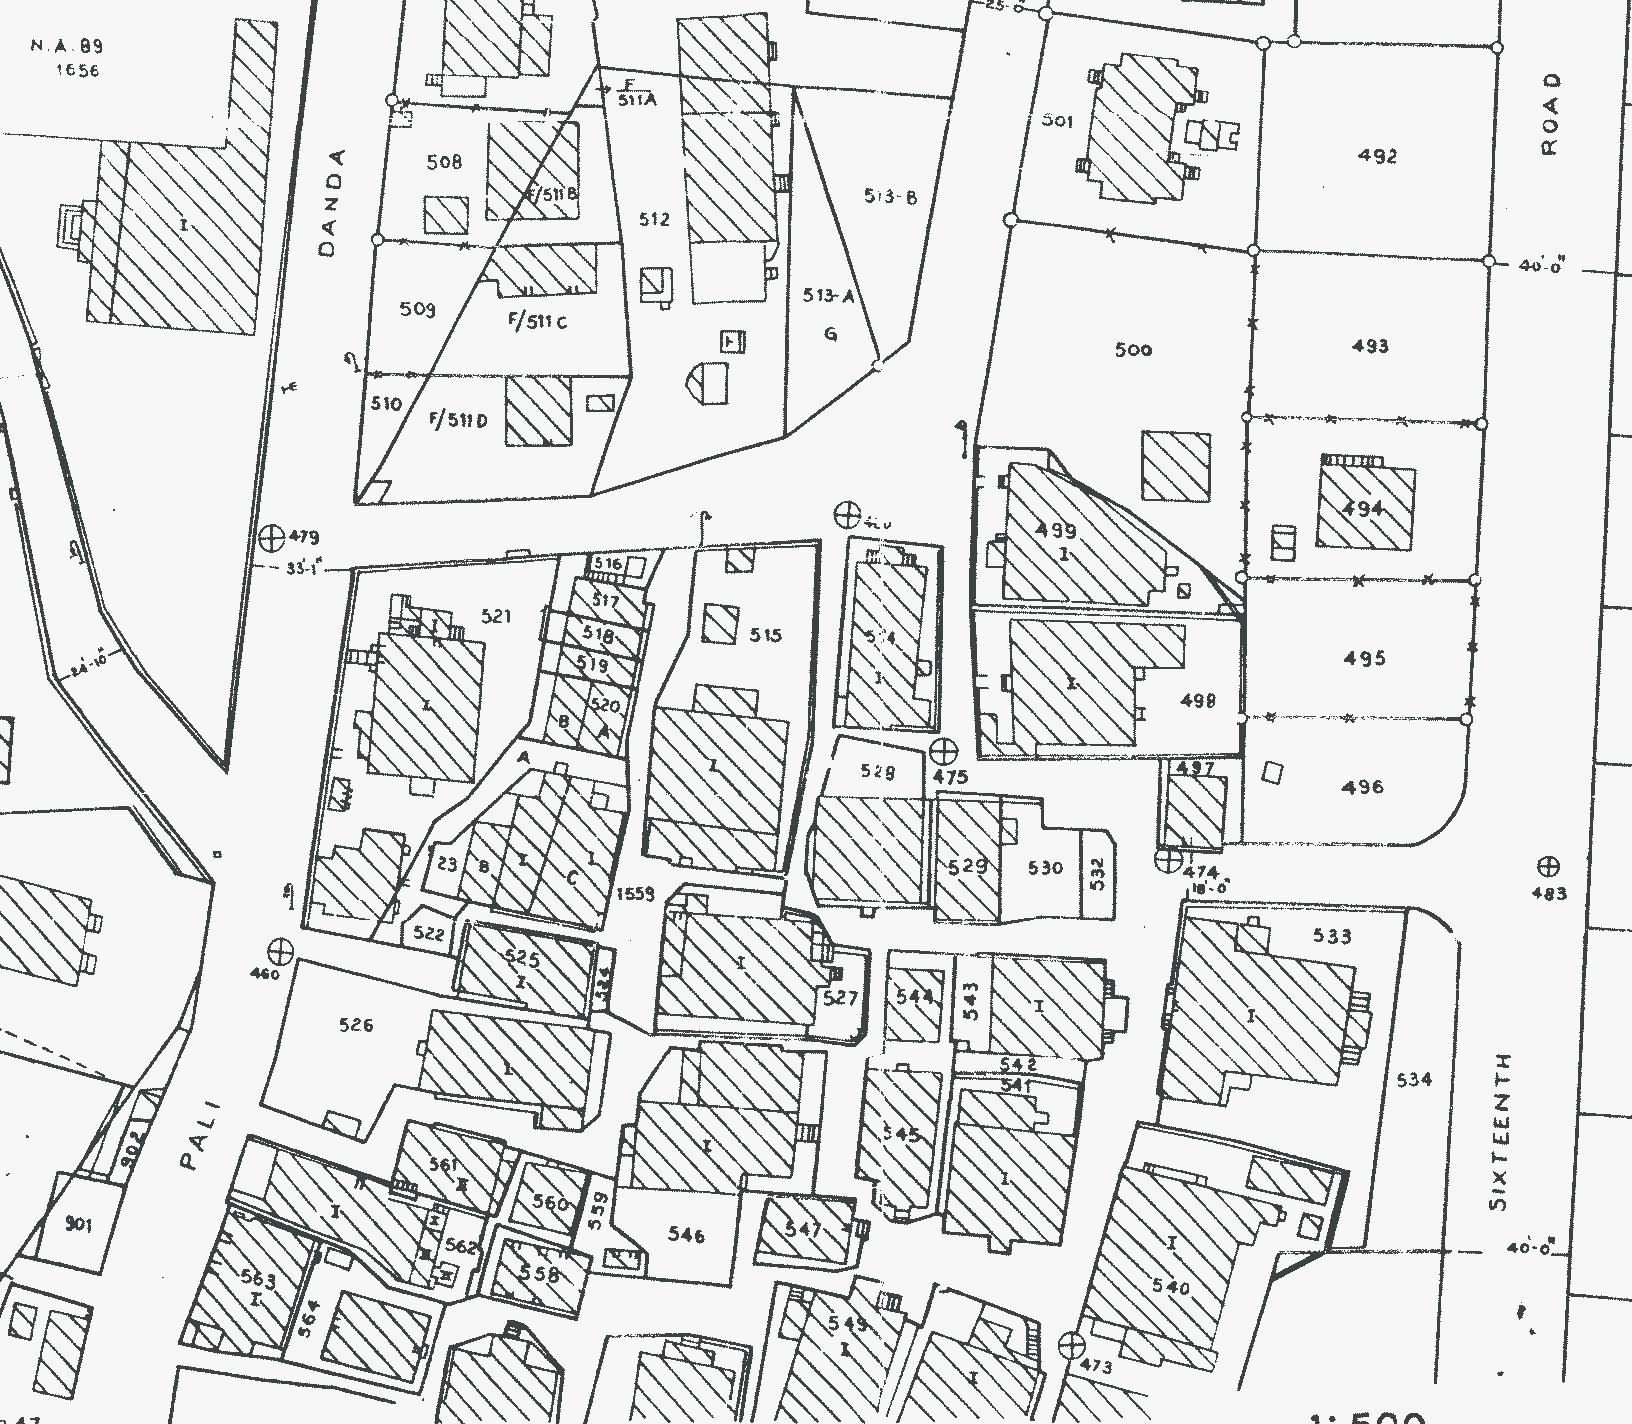 ecosystems  affordable housing institute – global blog - part of a city  town survey map s indicating property lines andbuilt form in pali gaothan all plot numbers correspond to privateindividual